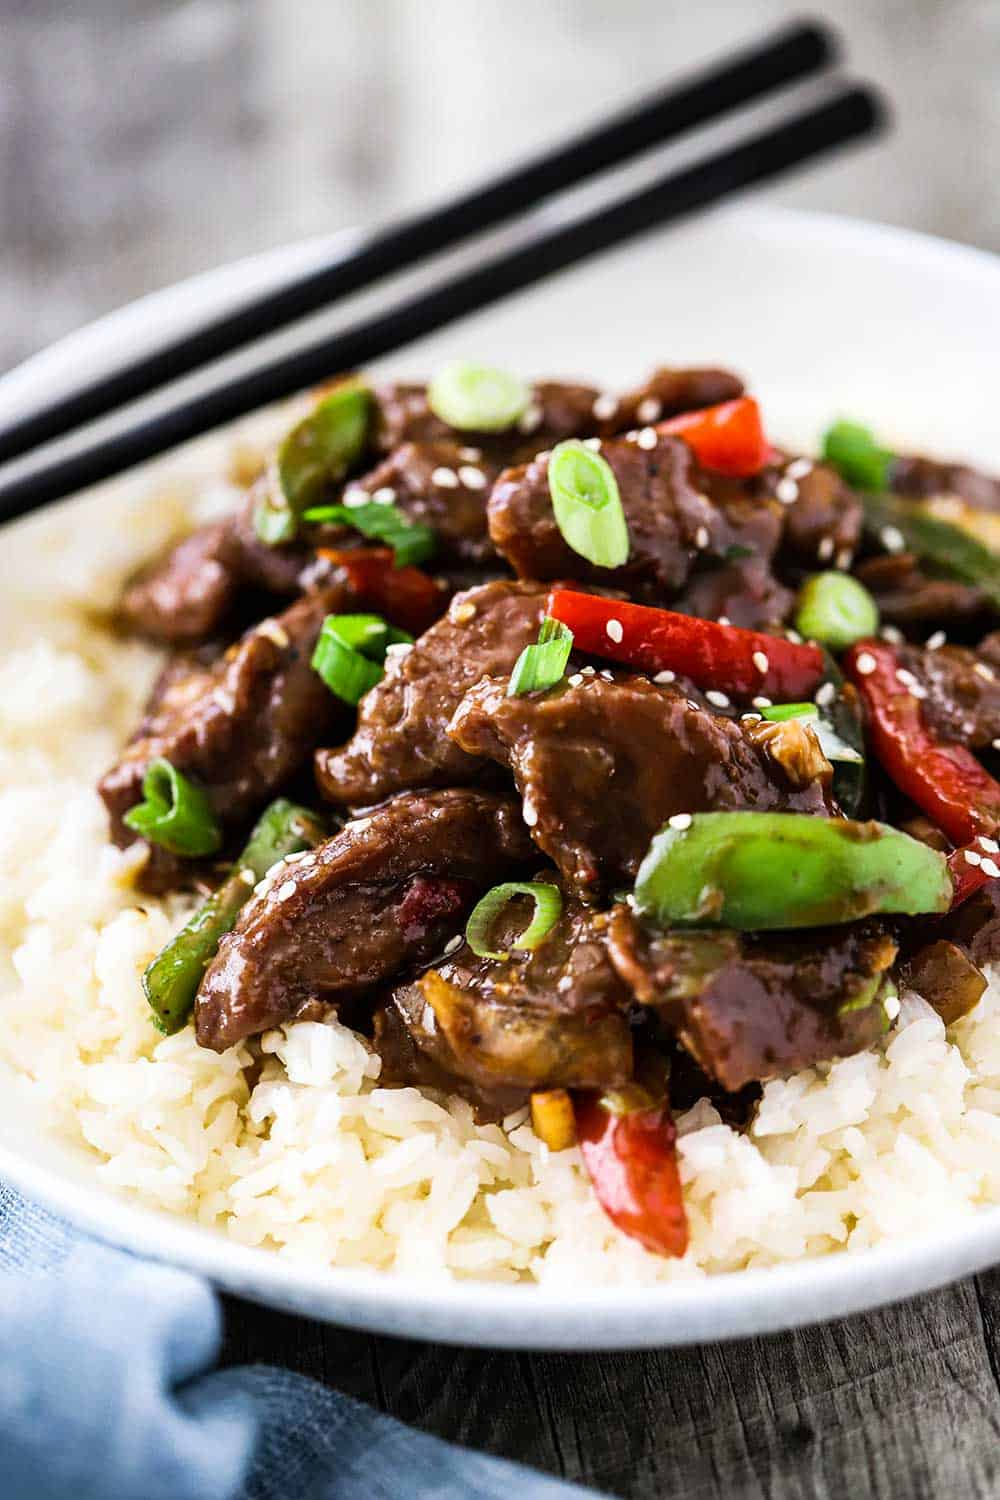 A white circular bowl filled with white rice topped with Mongolian Beef next to a pair of chop sticks.